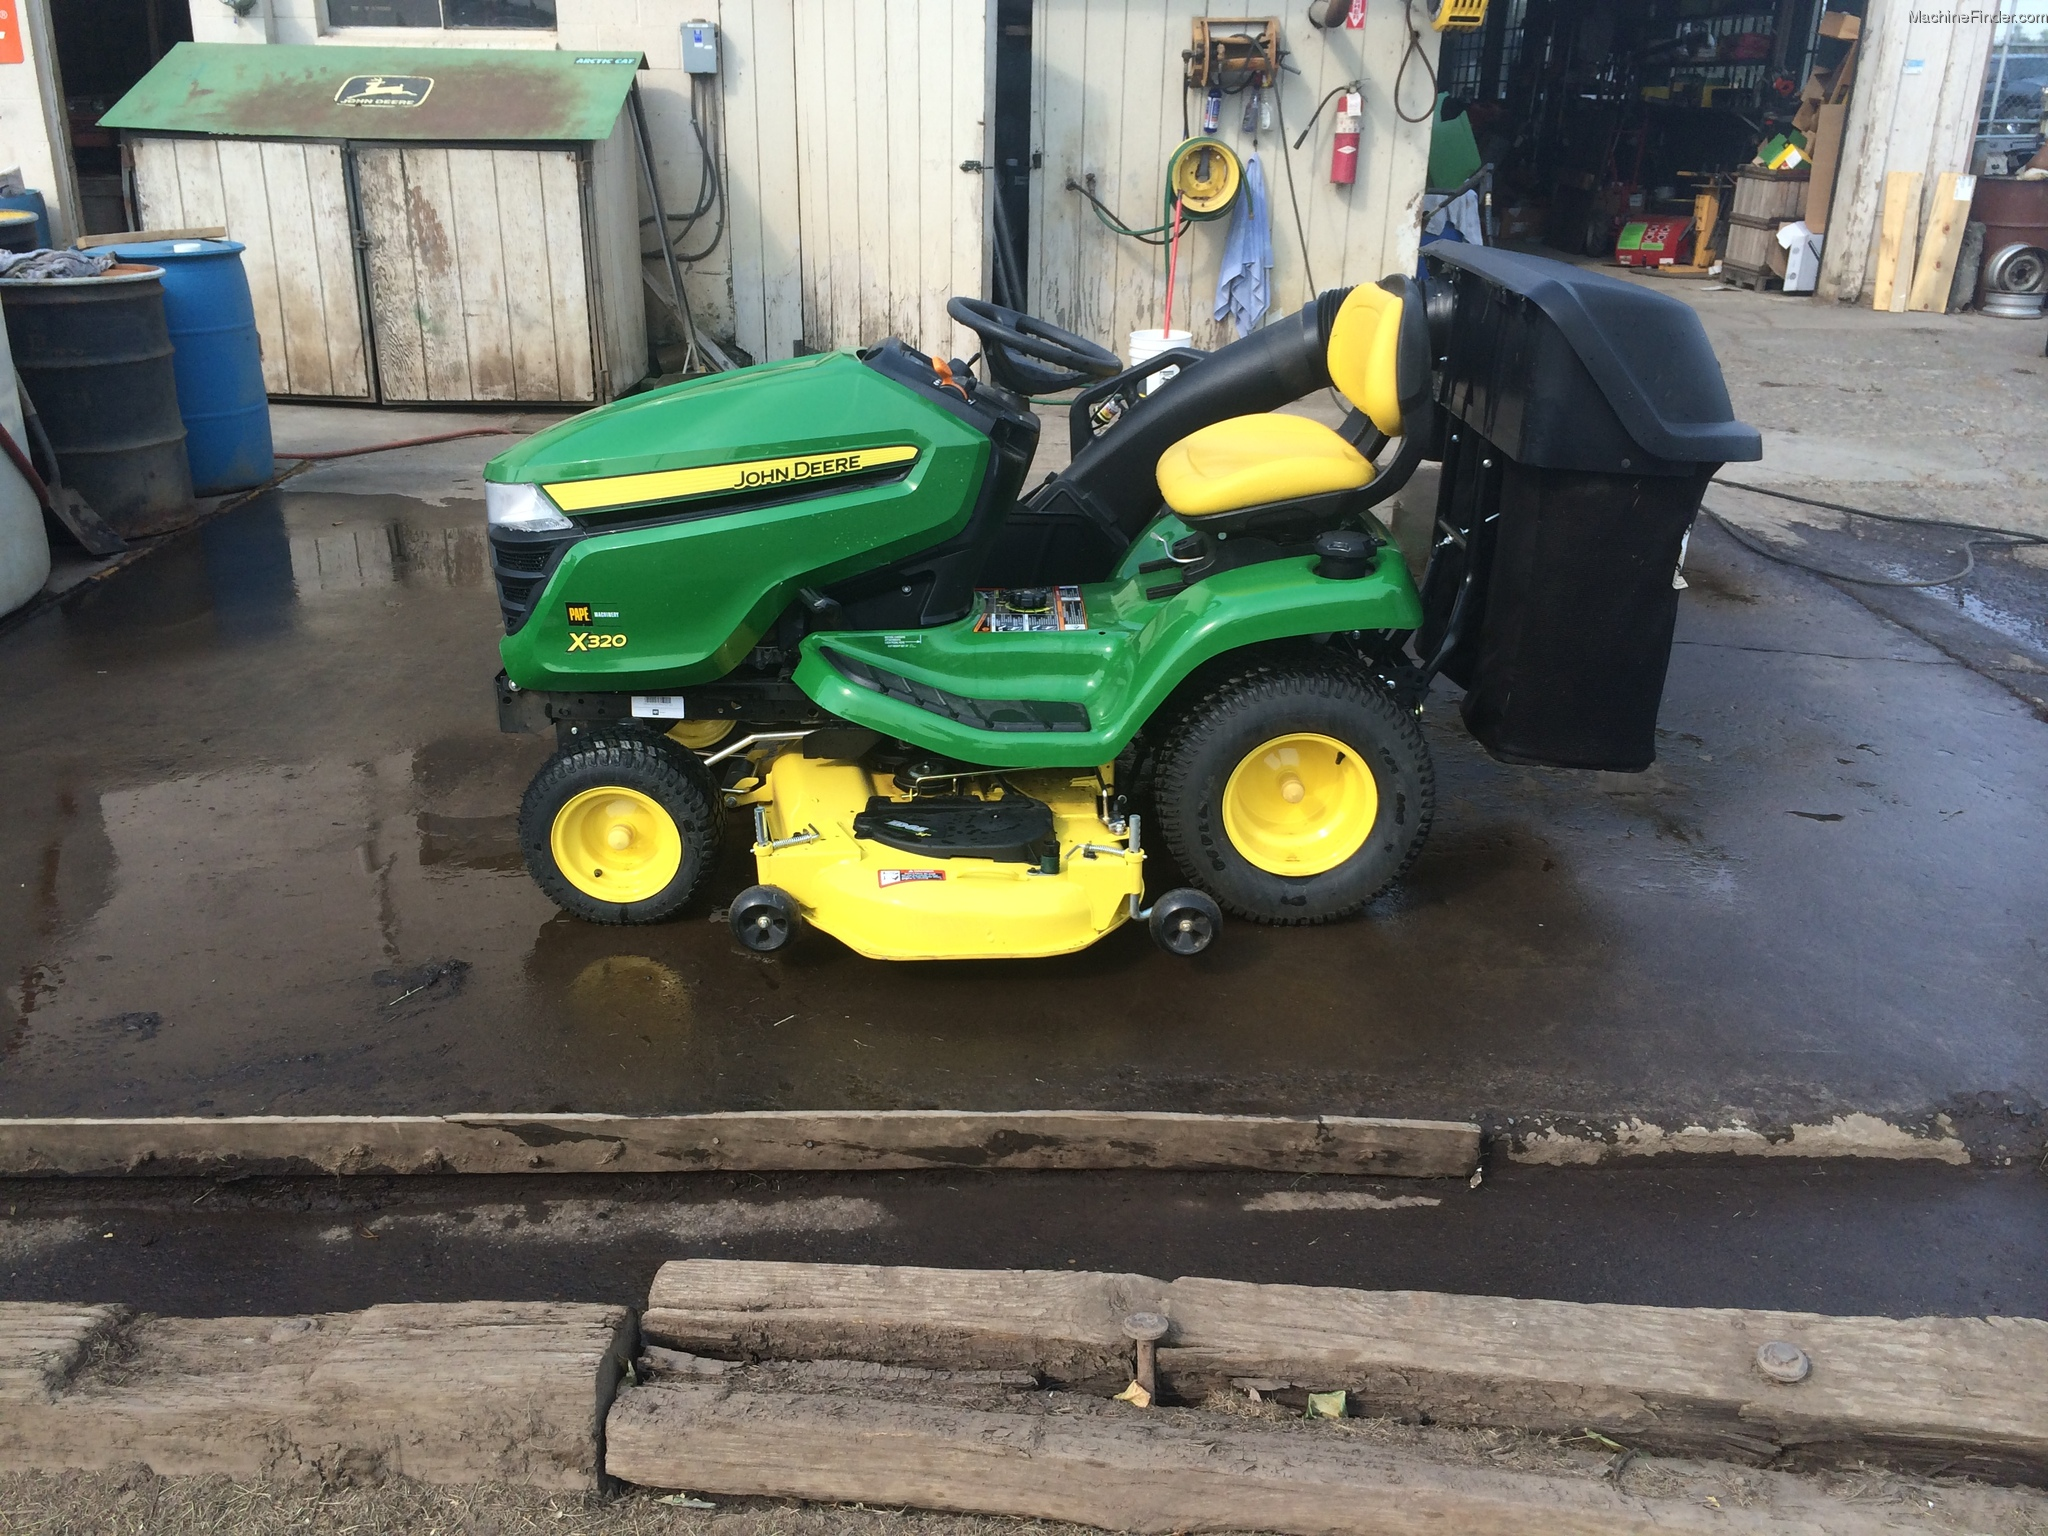 John Deere X320 Deck Parts X305r Belt Drive And Idlers Exploded Diagram Mower Tractors Lawn Mowers